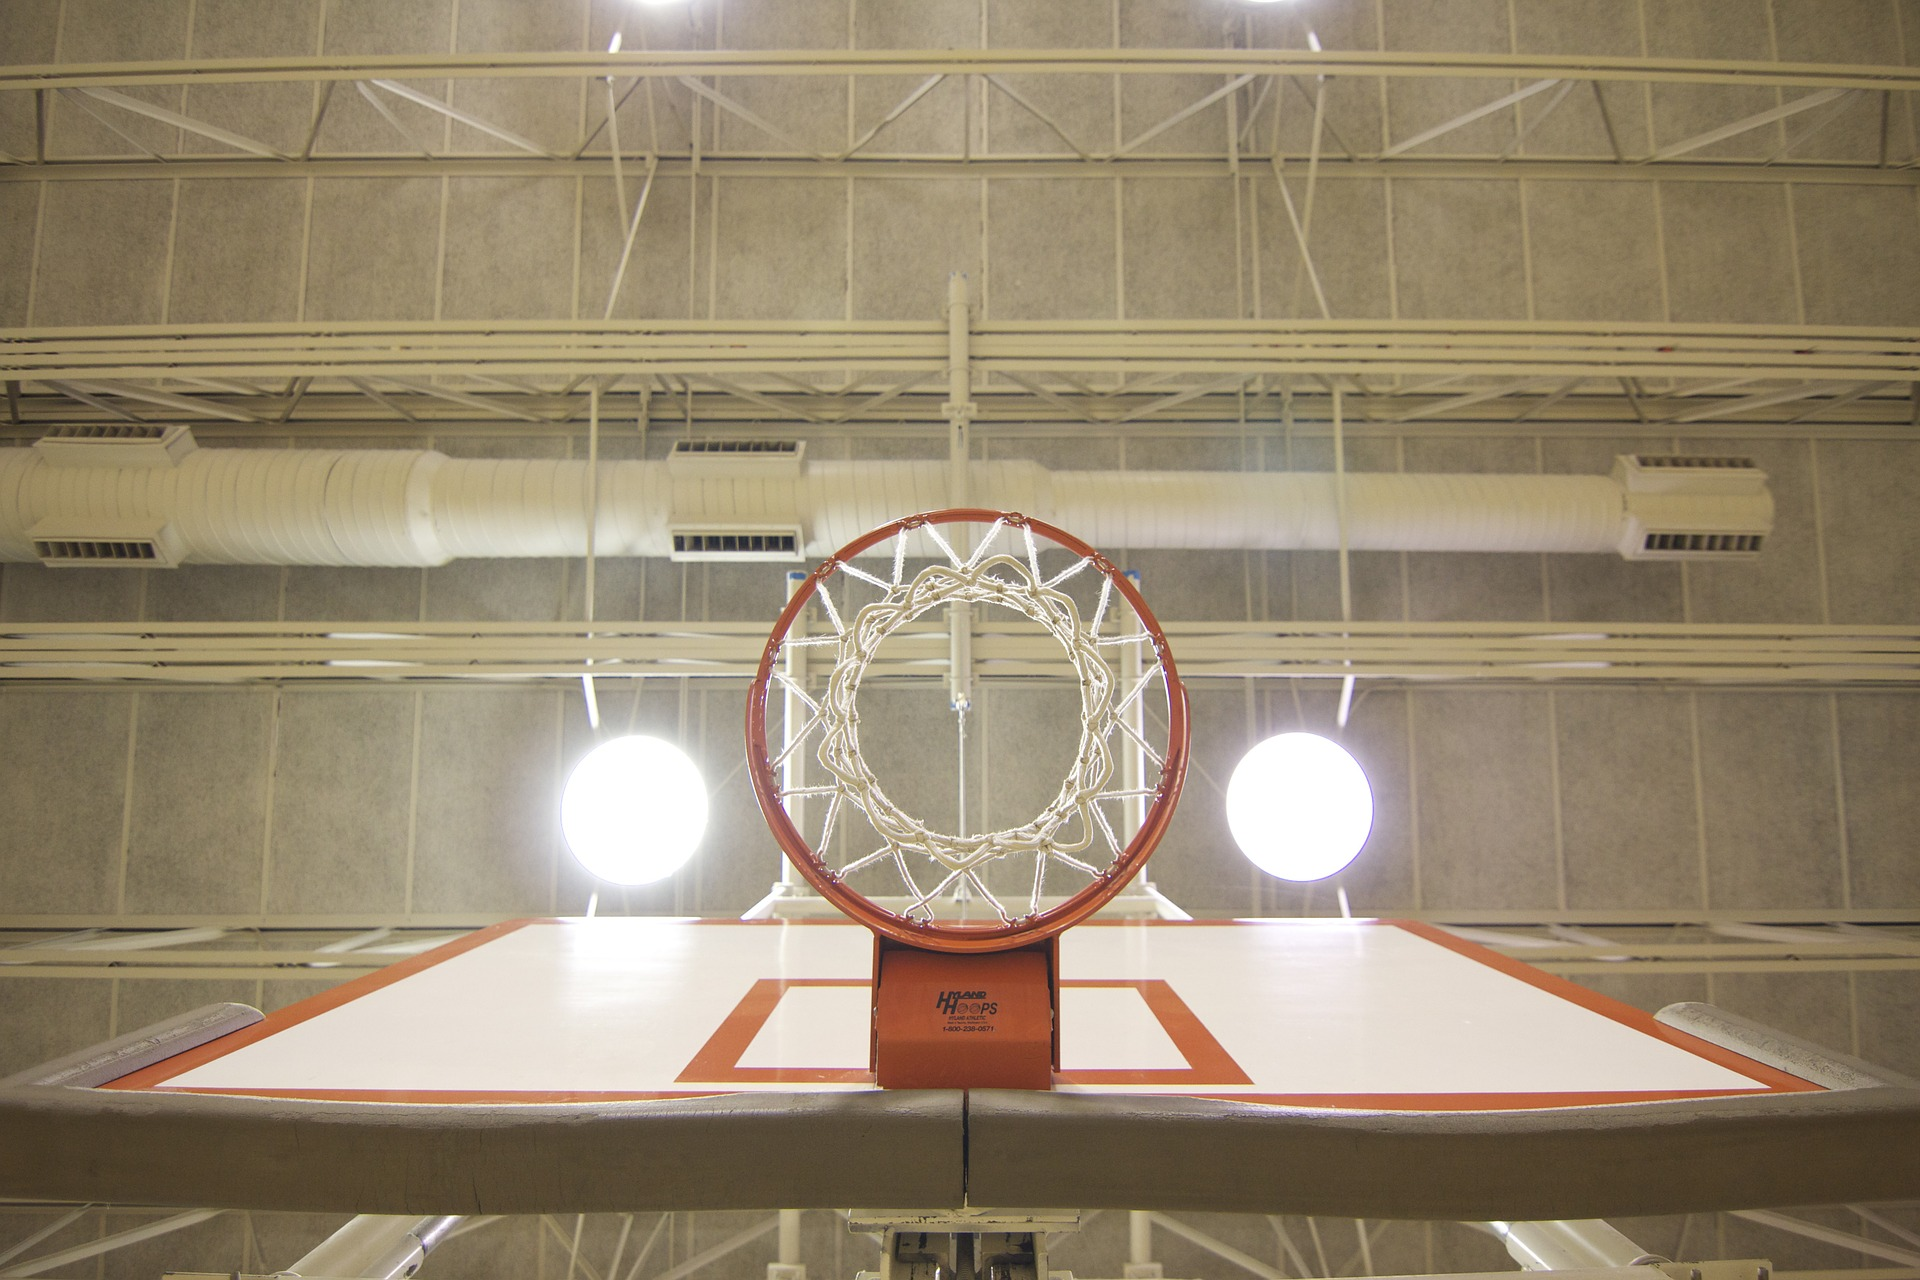 Basketball Game sound effects 1